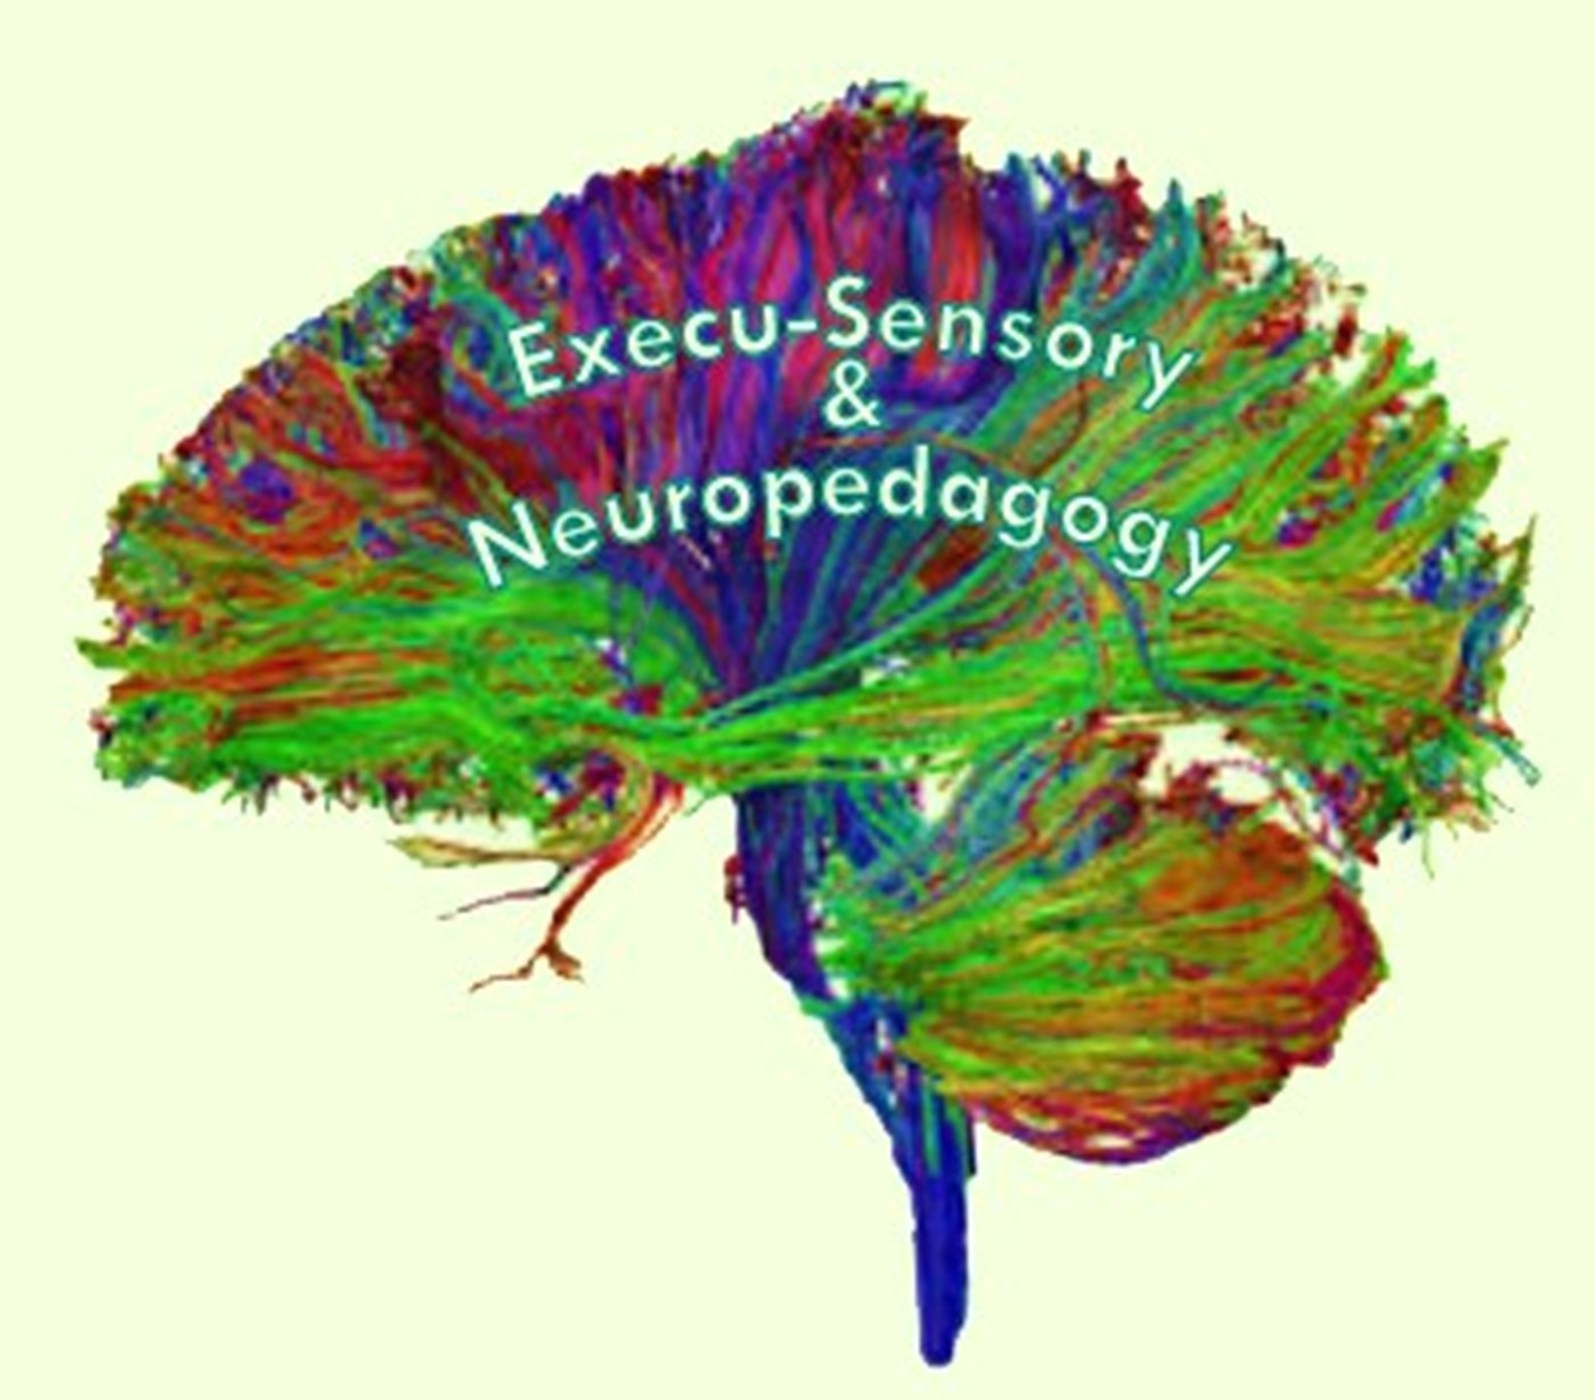 Execu-Sensory & Neuropedagogy Educational Consulting Services » Podcasts